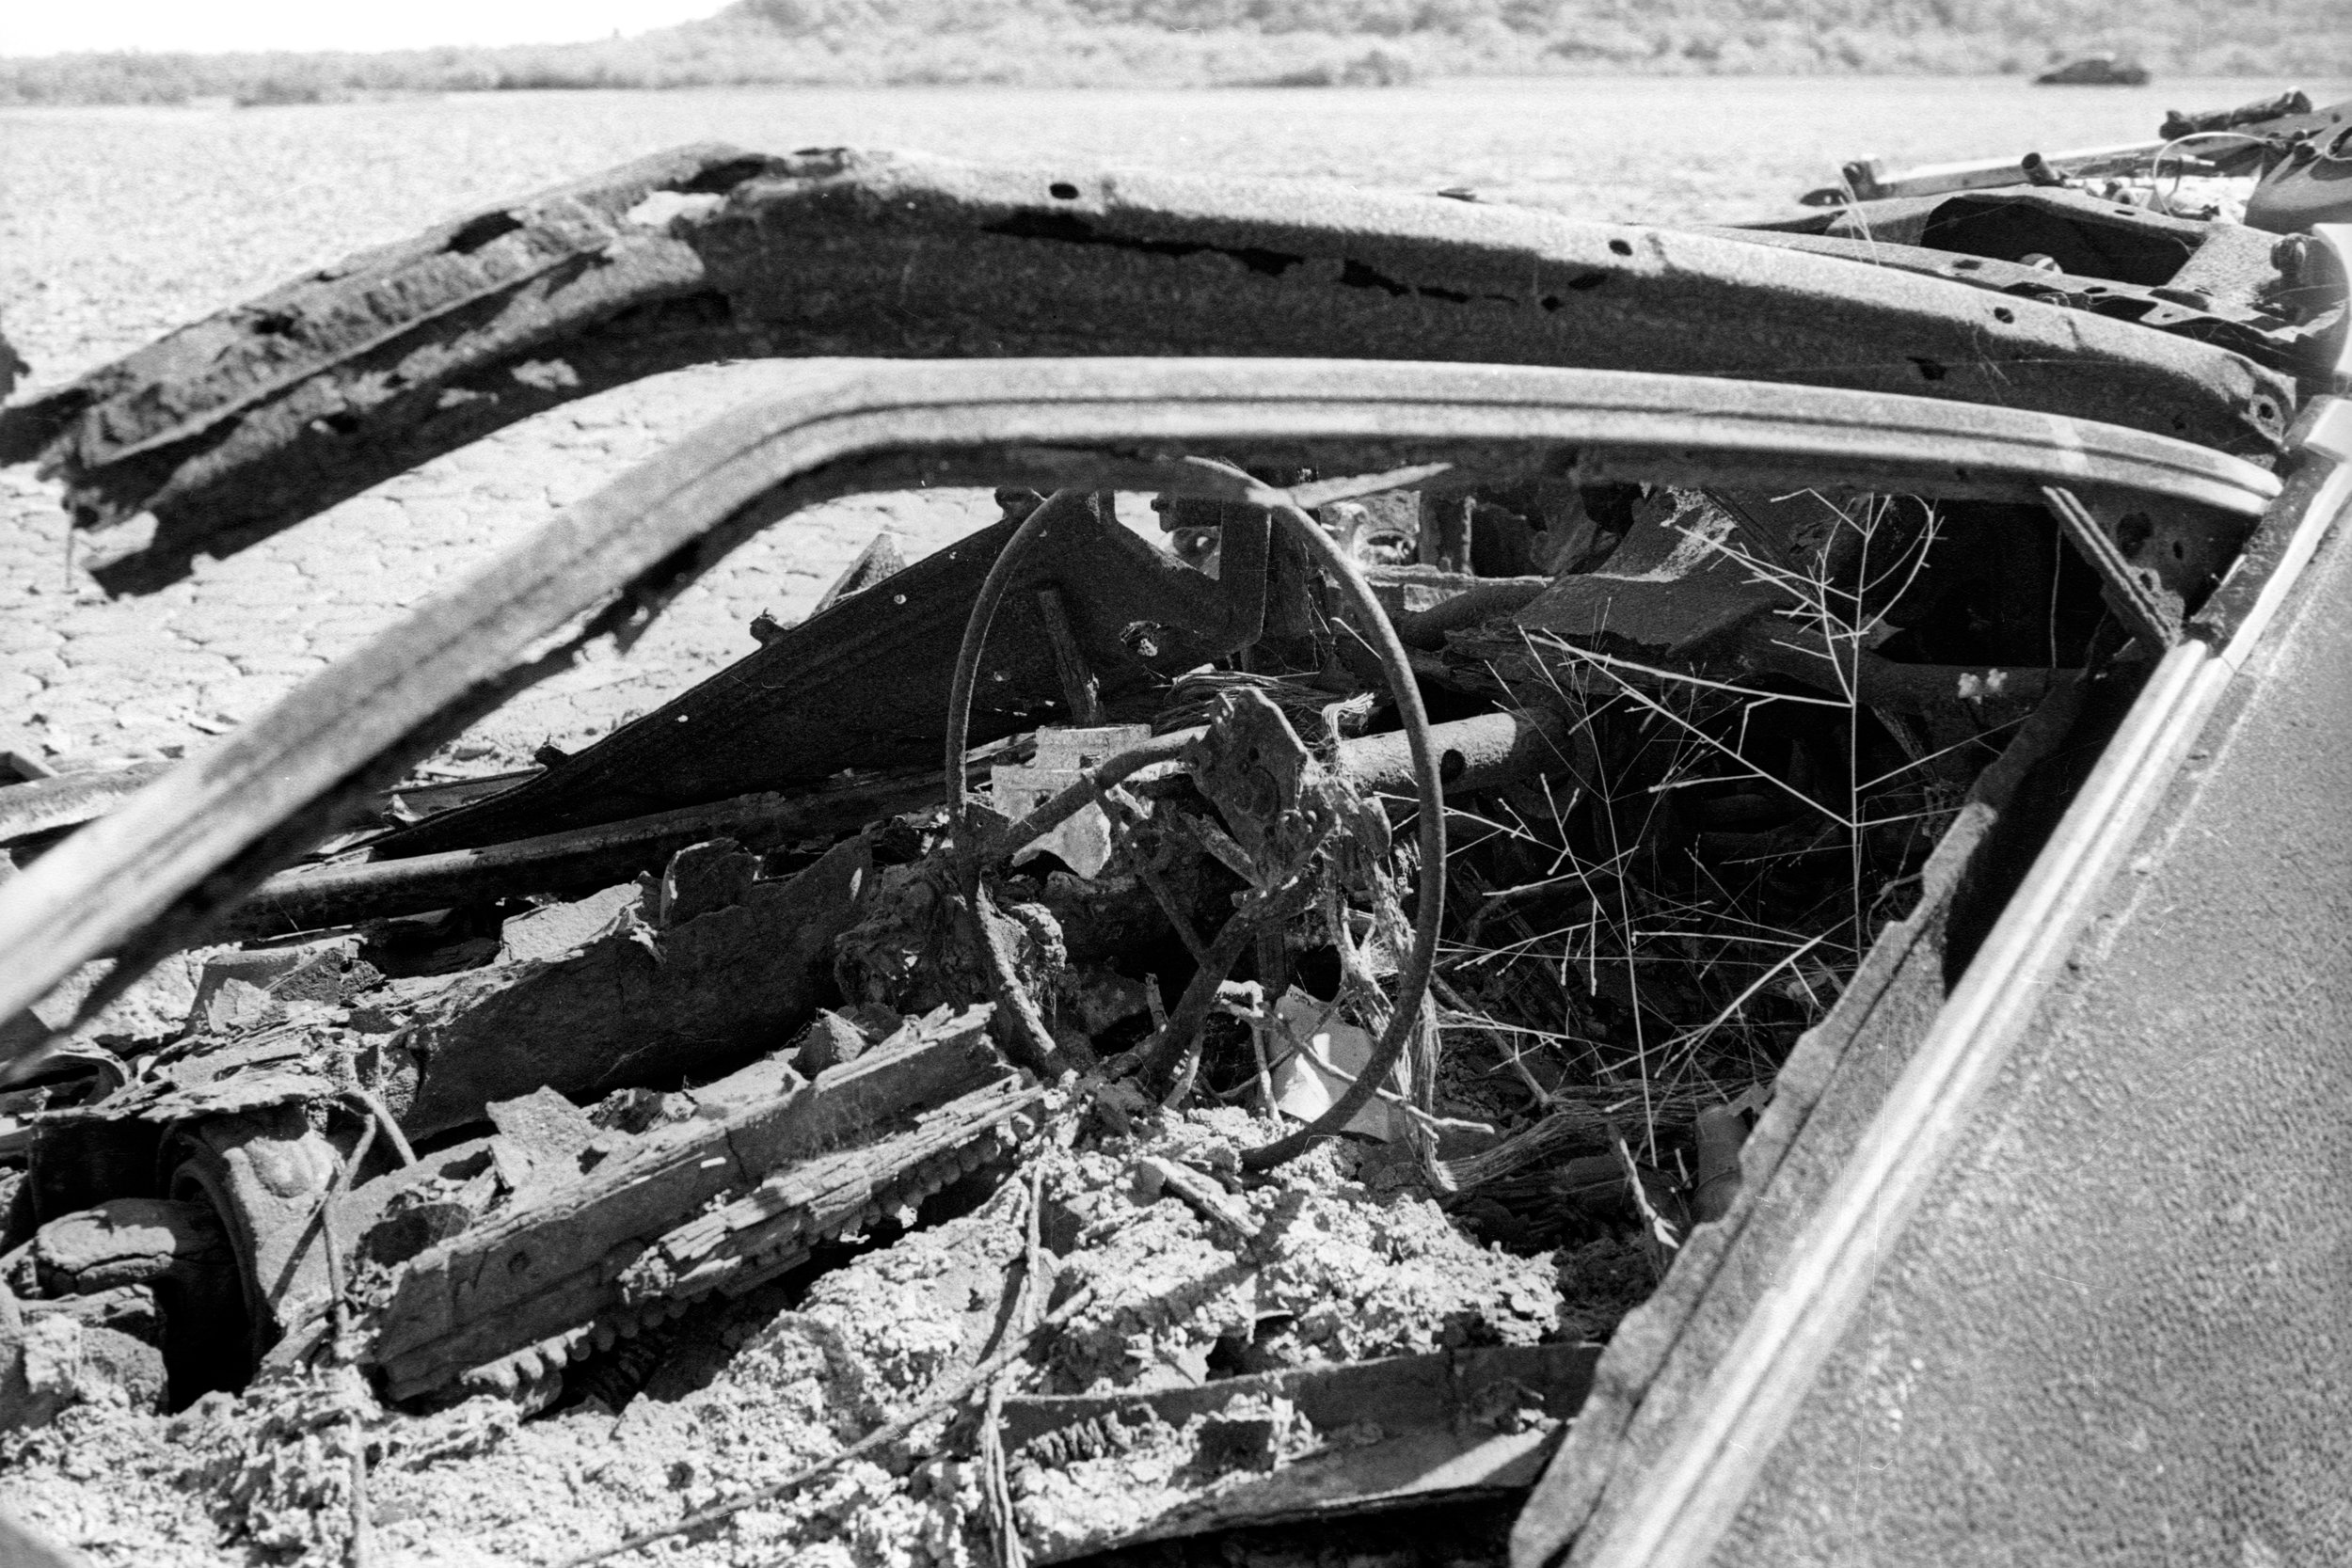 Last time I was here, this car was still standing, and the seats were still holding up. I came back after 4 years and this is what's left. Kodak XX-5222 , Leica M6 w/ 35mm f/2.5 (Elijah Clarke).